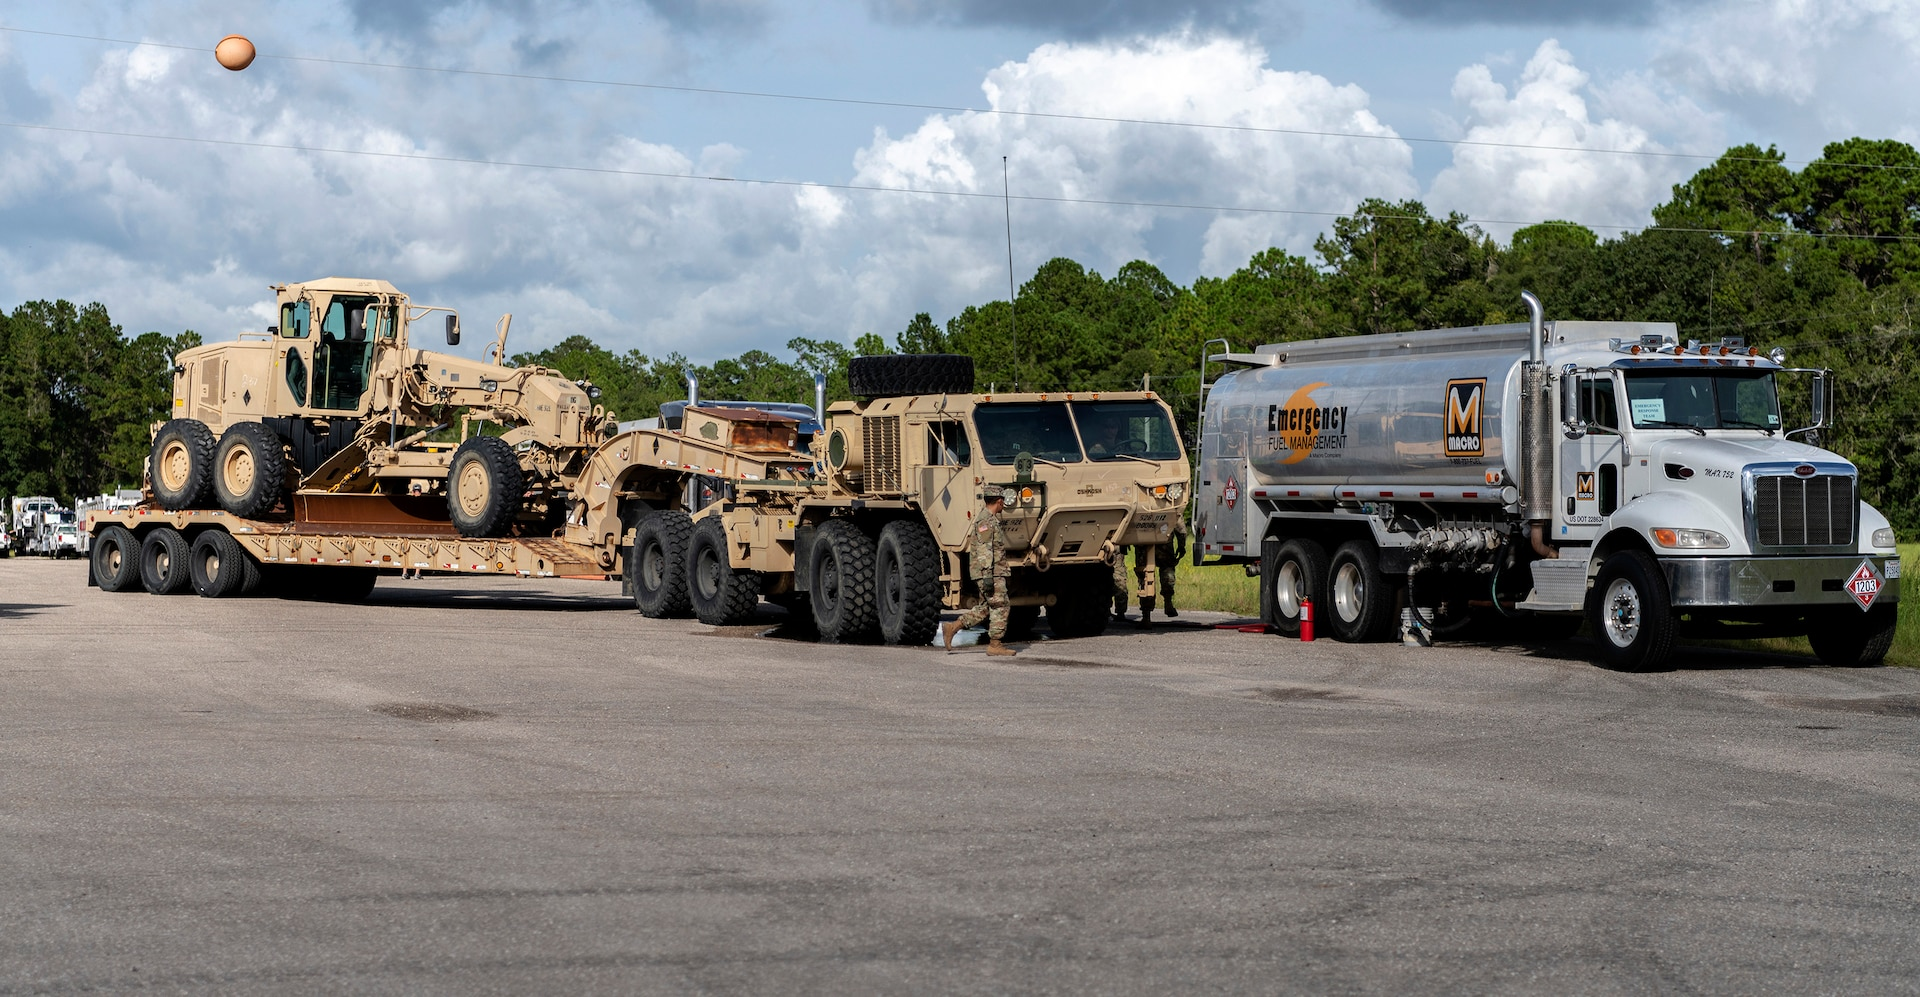 Soldiers from the 92nd Engineer Battalion, based at Fort Stewart, Georgia, refuel their vehicles after arriving in Camp Blanding, Florida, for Hurricane Dorian support Sept. 3.